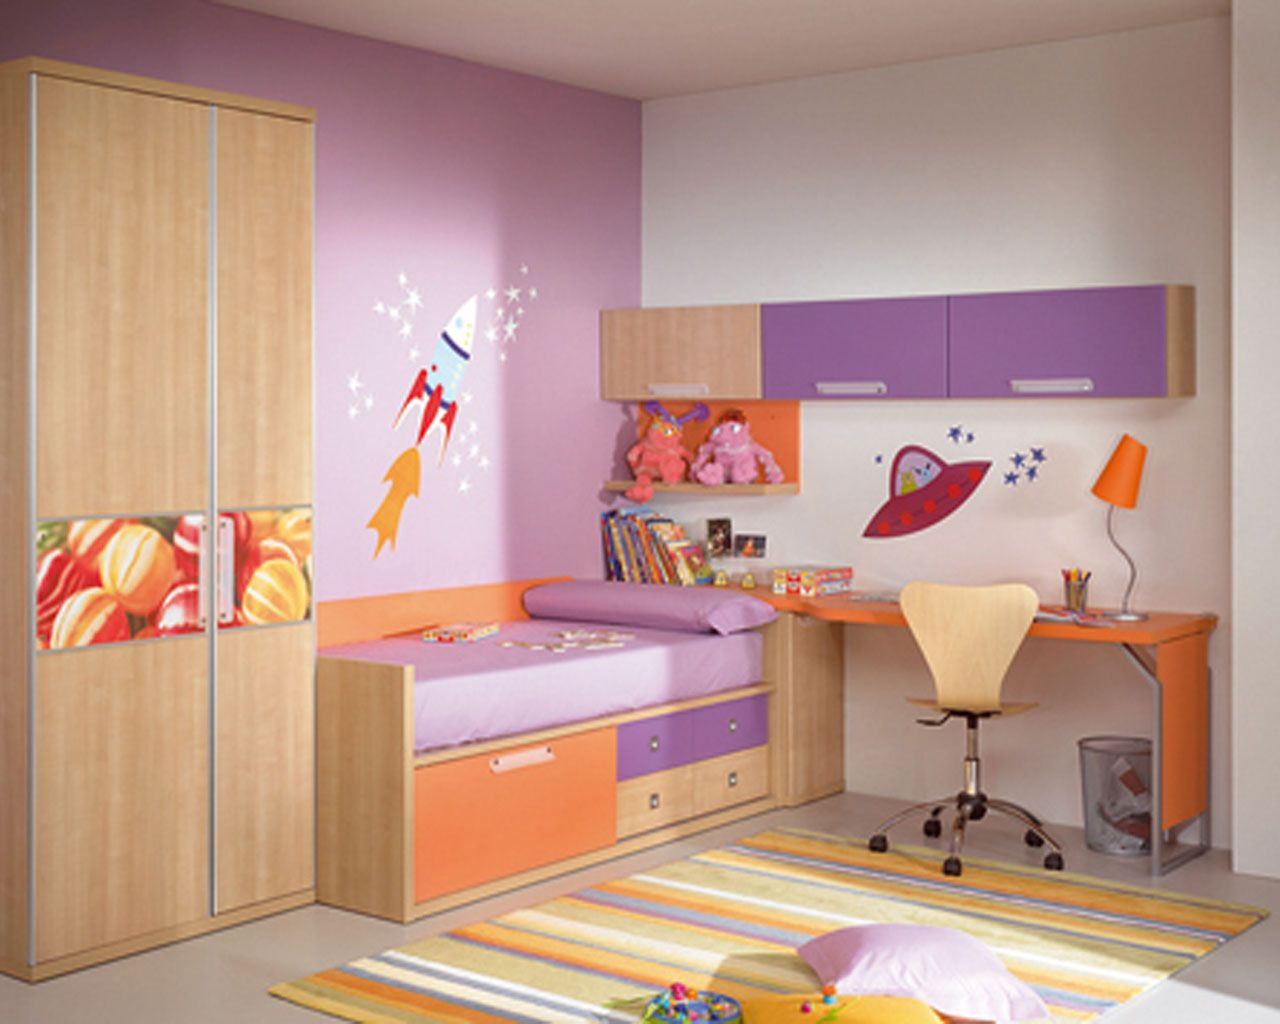 Child Bedroom Decor purple and white themed modern kids room design with corner space